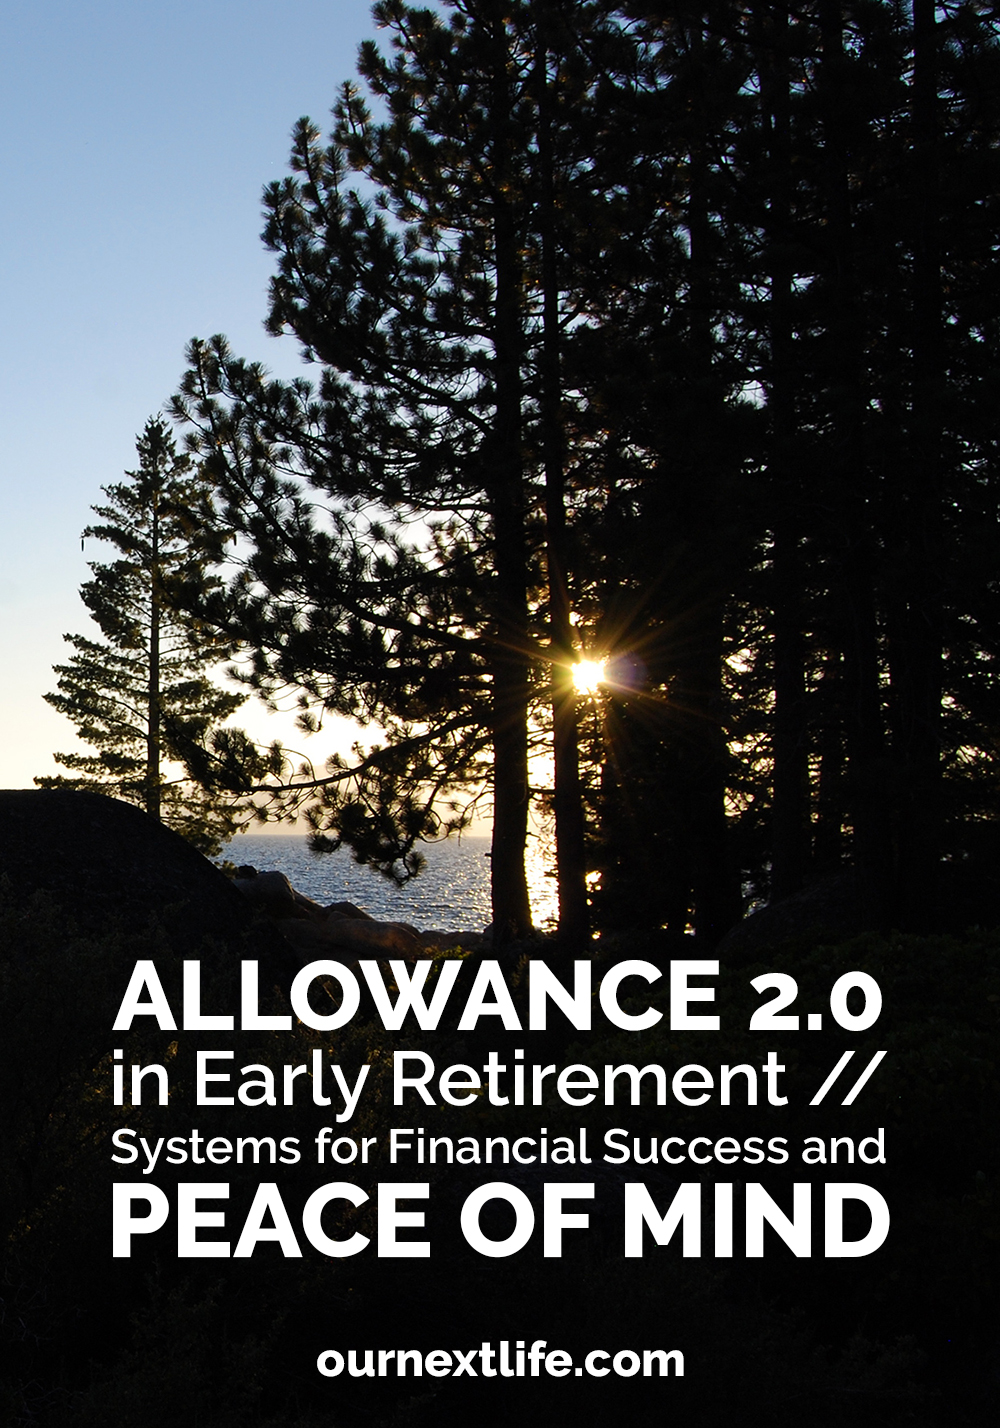 Bringing back the allowance in early retirement // Systems for financial success and peace of mind // using a personal allowance to take the pressure off our nest egg savings as well as our marriage and relationship!